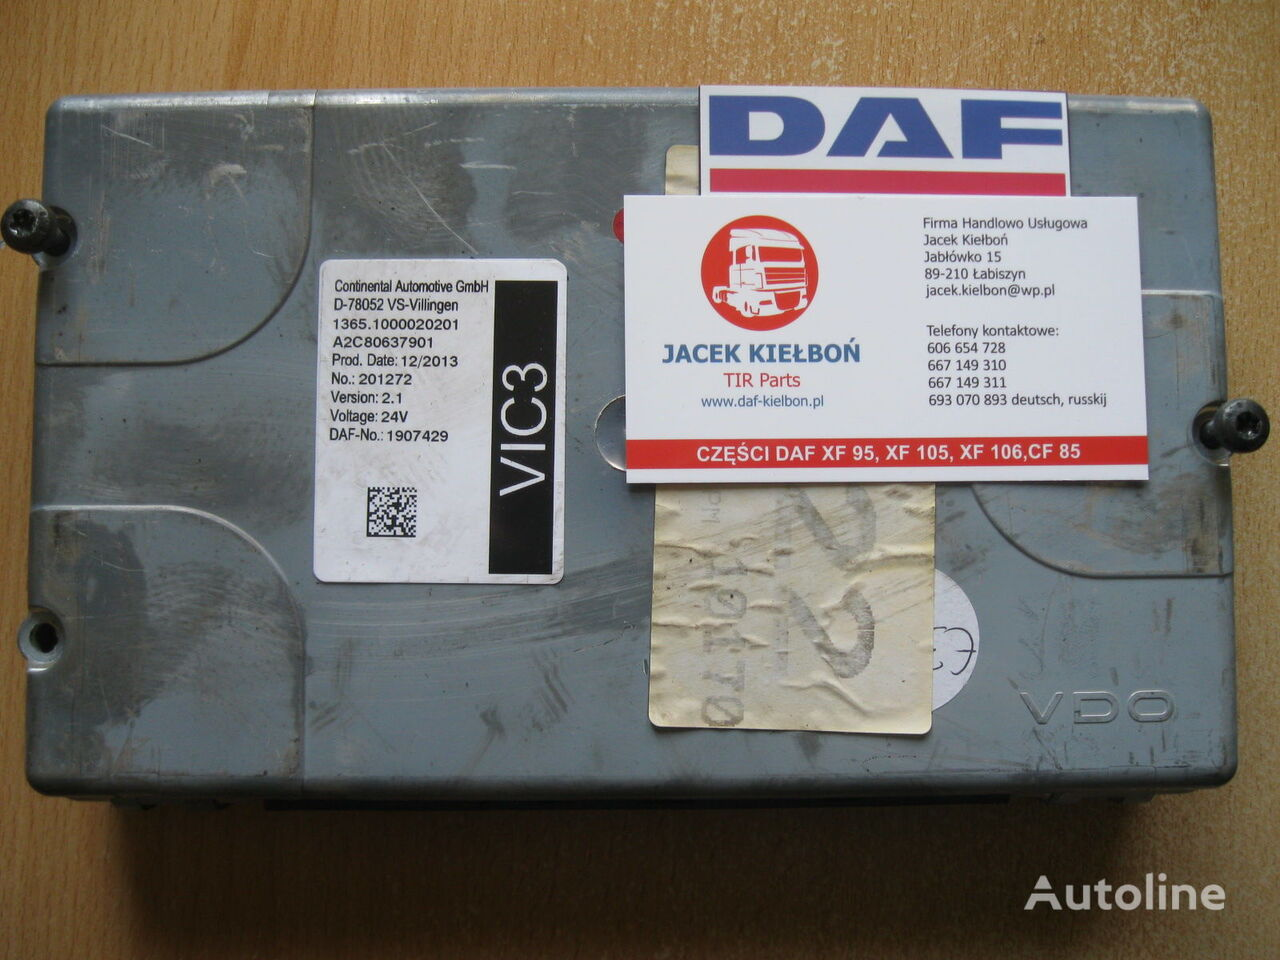 Continental STEROWNIK VIC 3 control unit for DAF XF 106 tractor unit